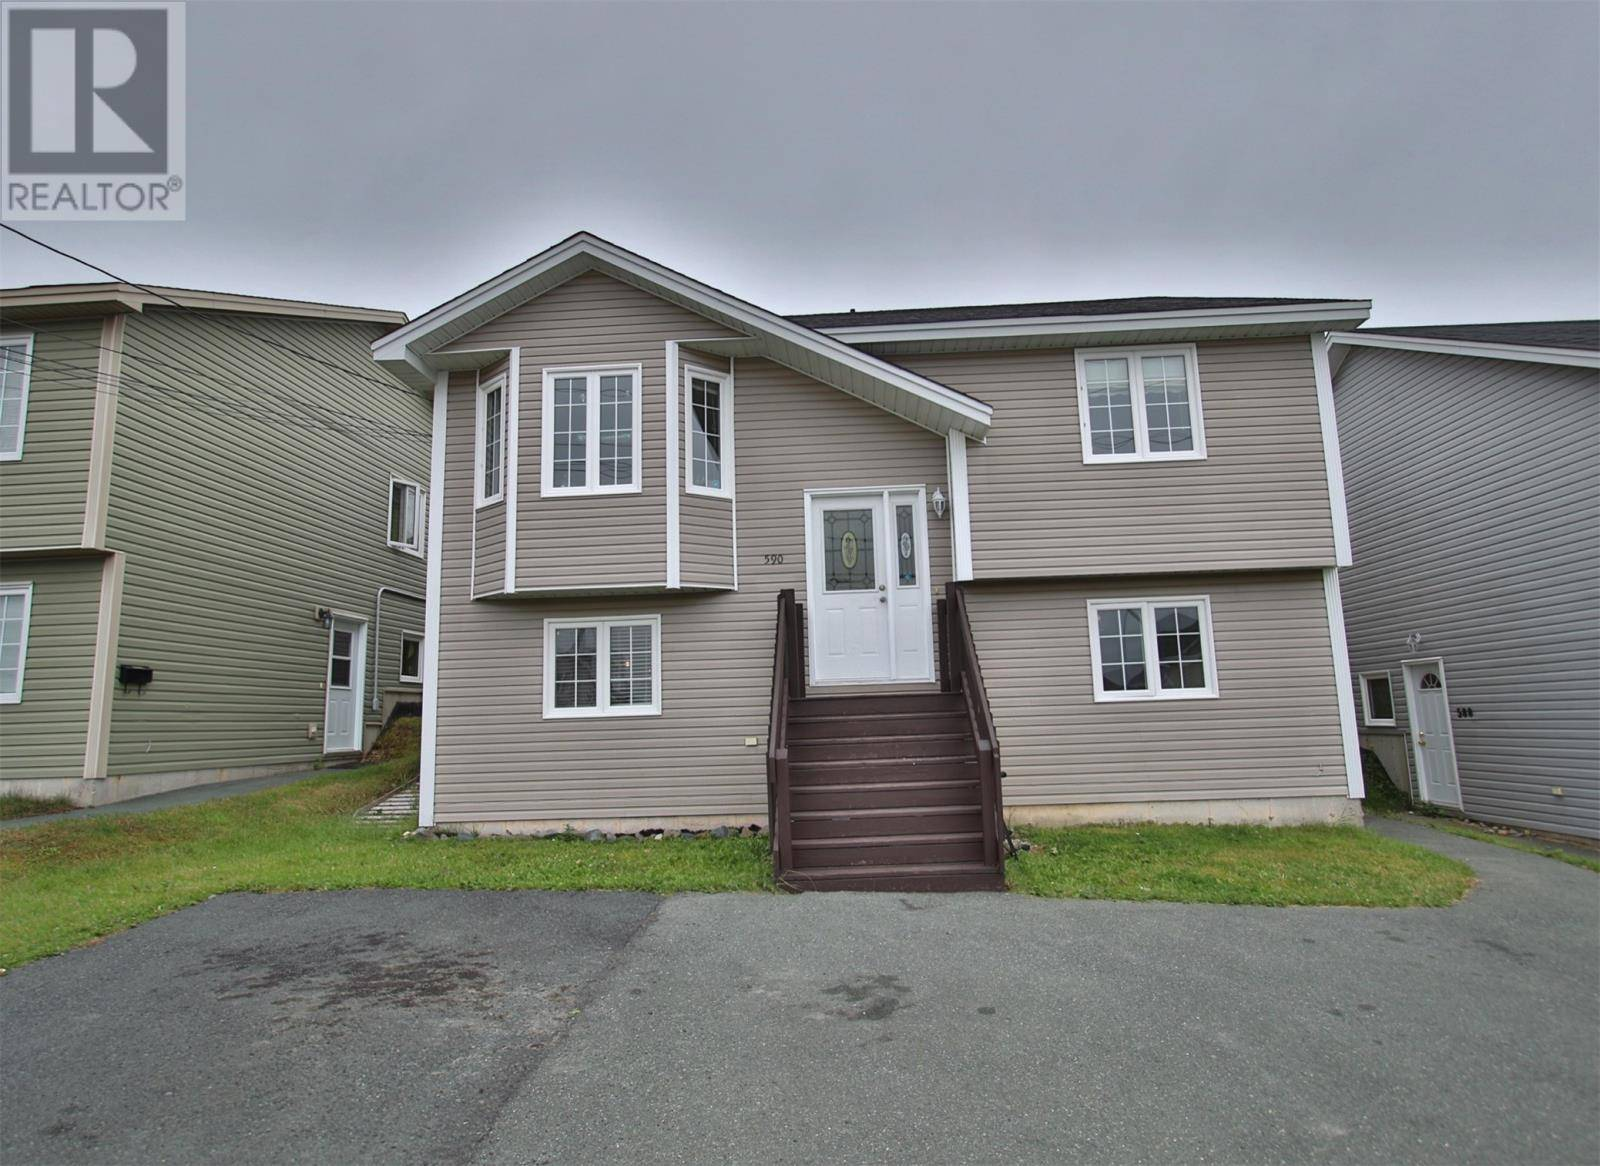 House for sale at 590 Empire Ave St. John's Newfoundland - MLS: 1200945